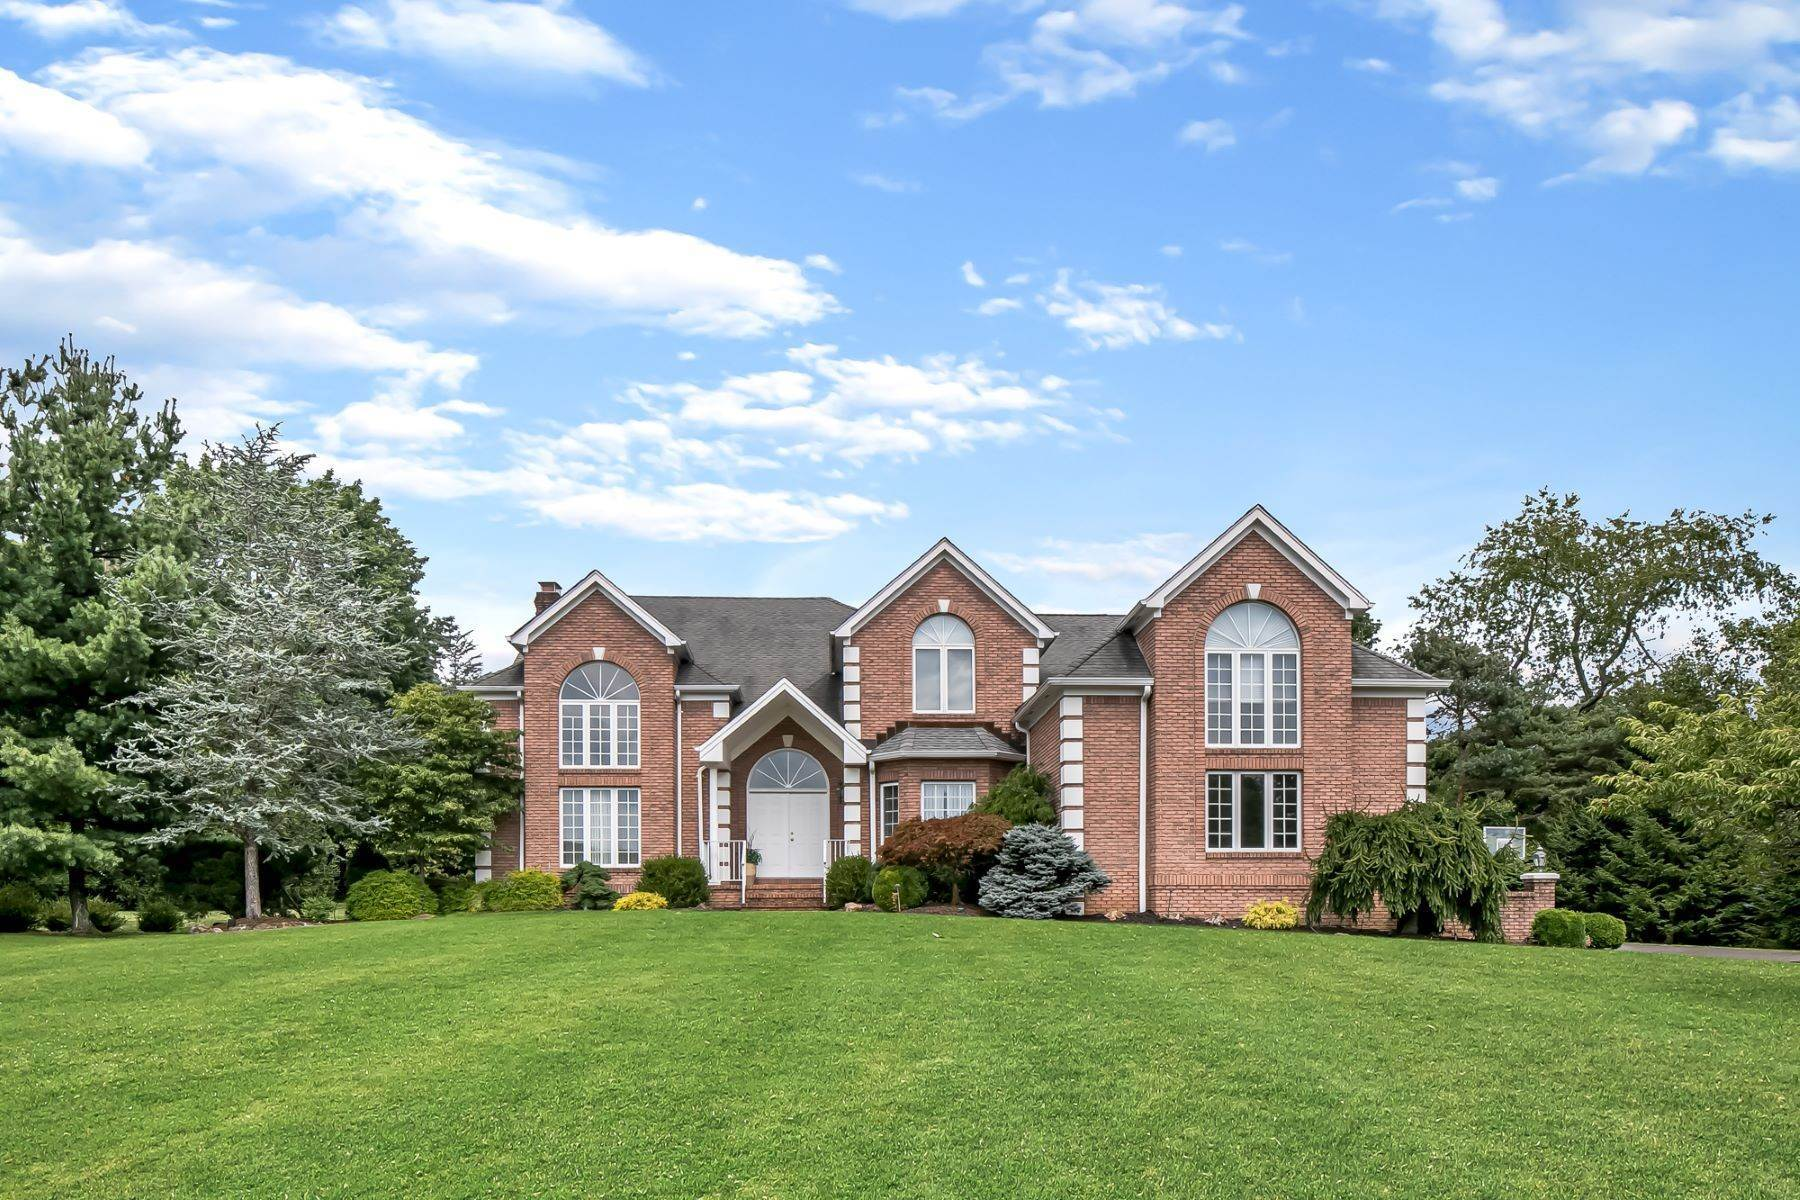 Single Family Homes for Sale at Magnificent Colonial 31 Beacon Hill Drive Chester, New Jersey 0730 United States